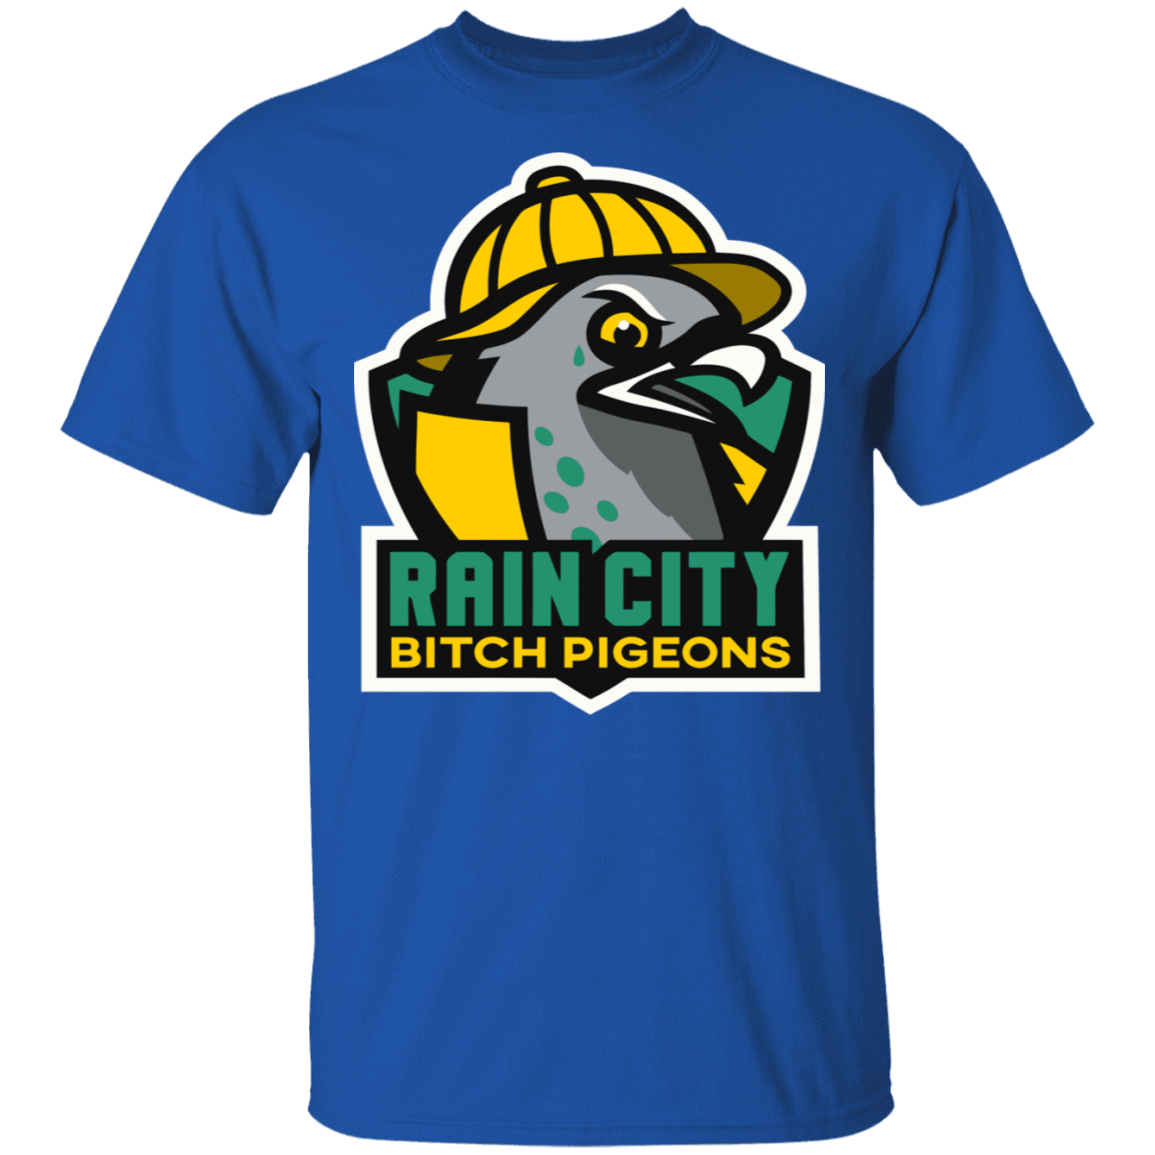 Rain City Bitch Pigeons T-Shirts, Hoodies, Tank 22-110-79271397-249 - Tee Ript